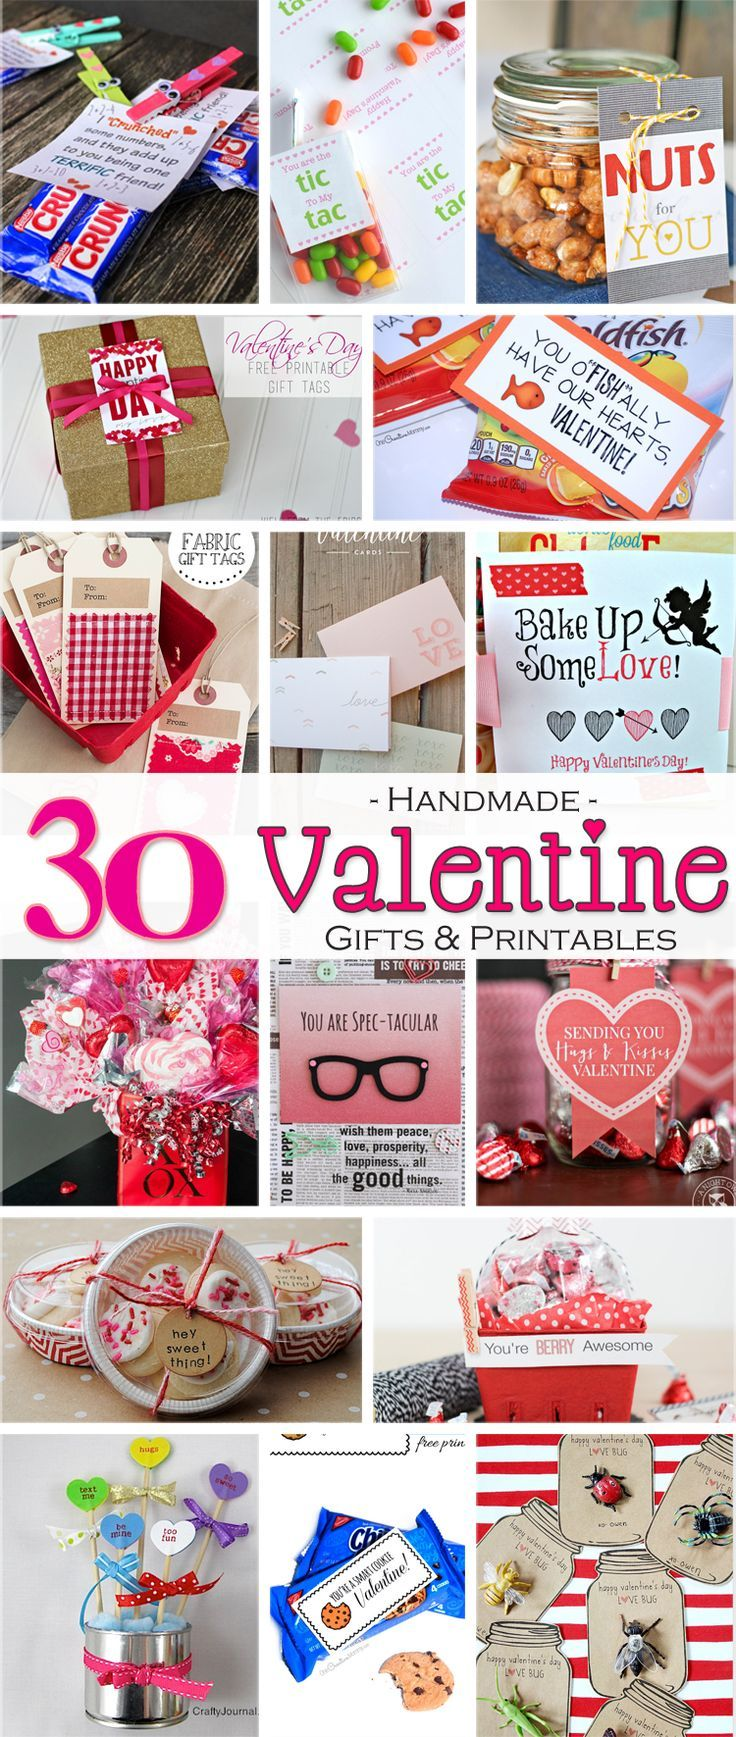 30 Handmade Valentine Gift Ideas and Free Printables